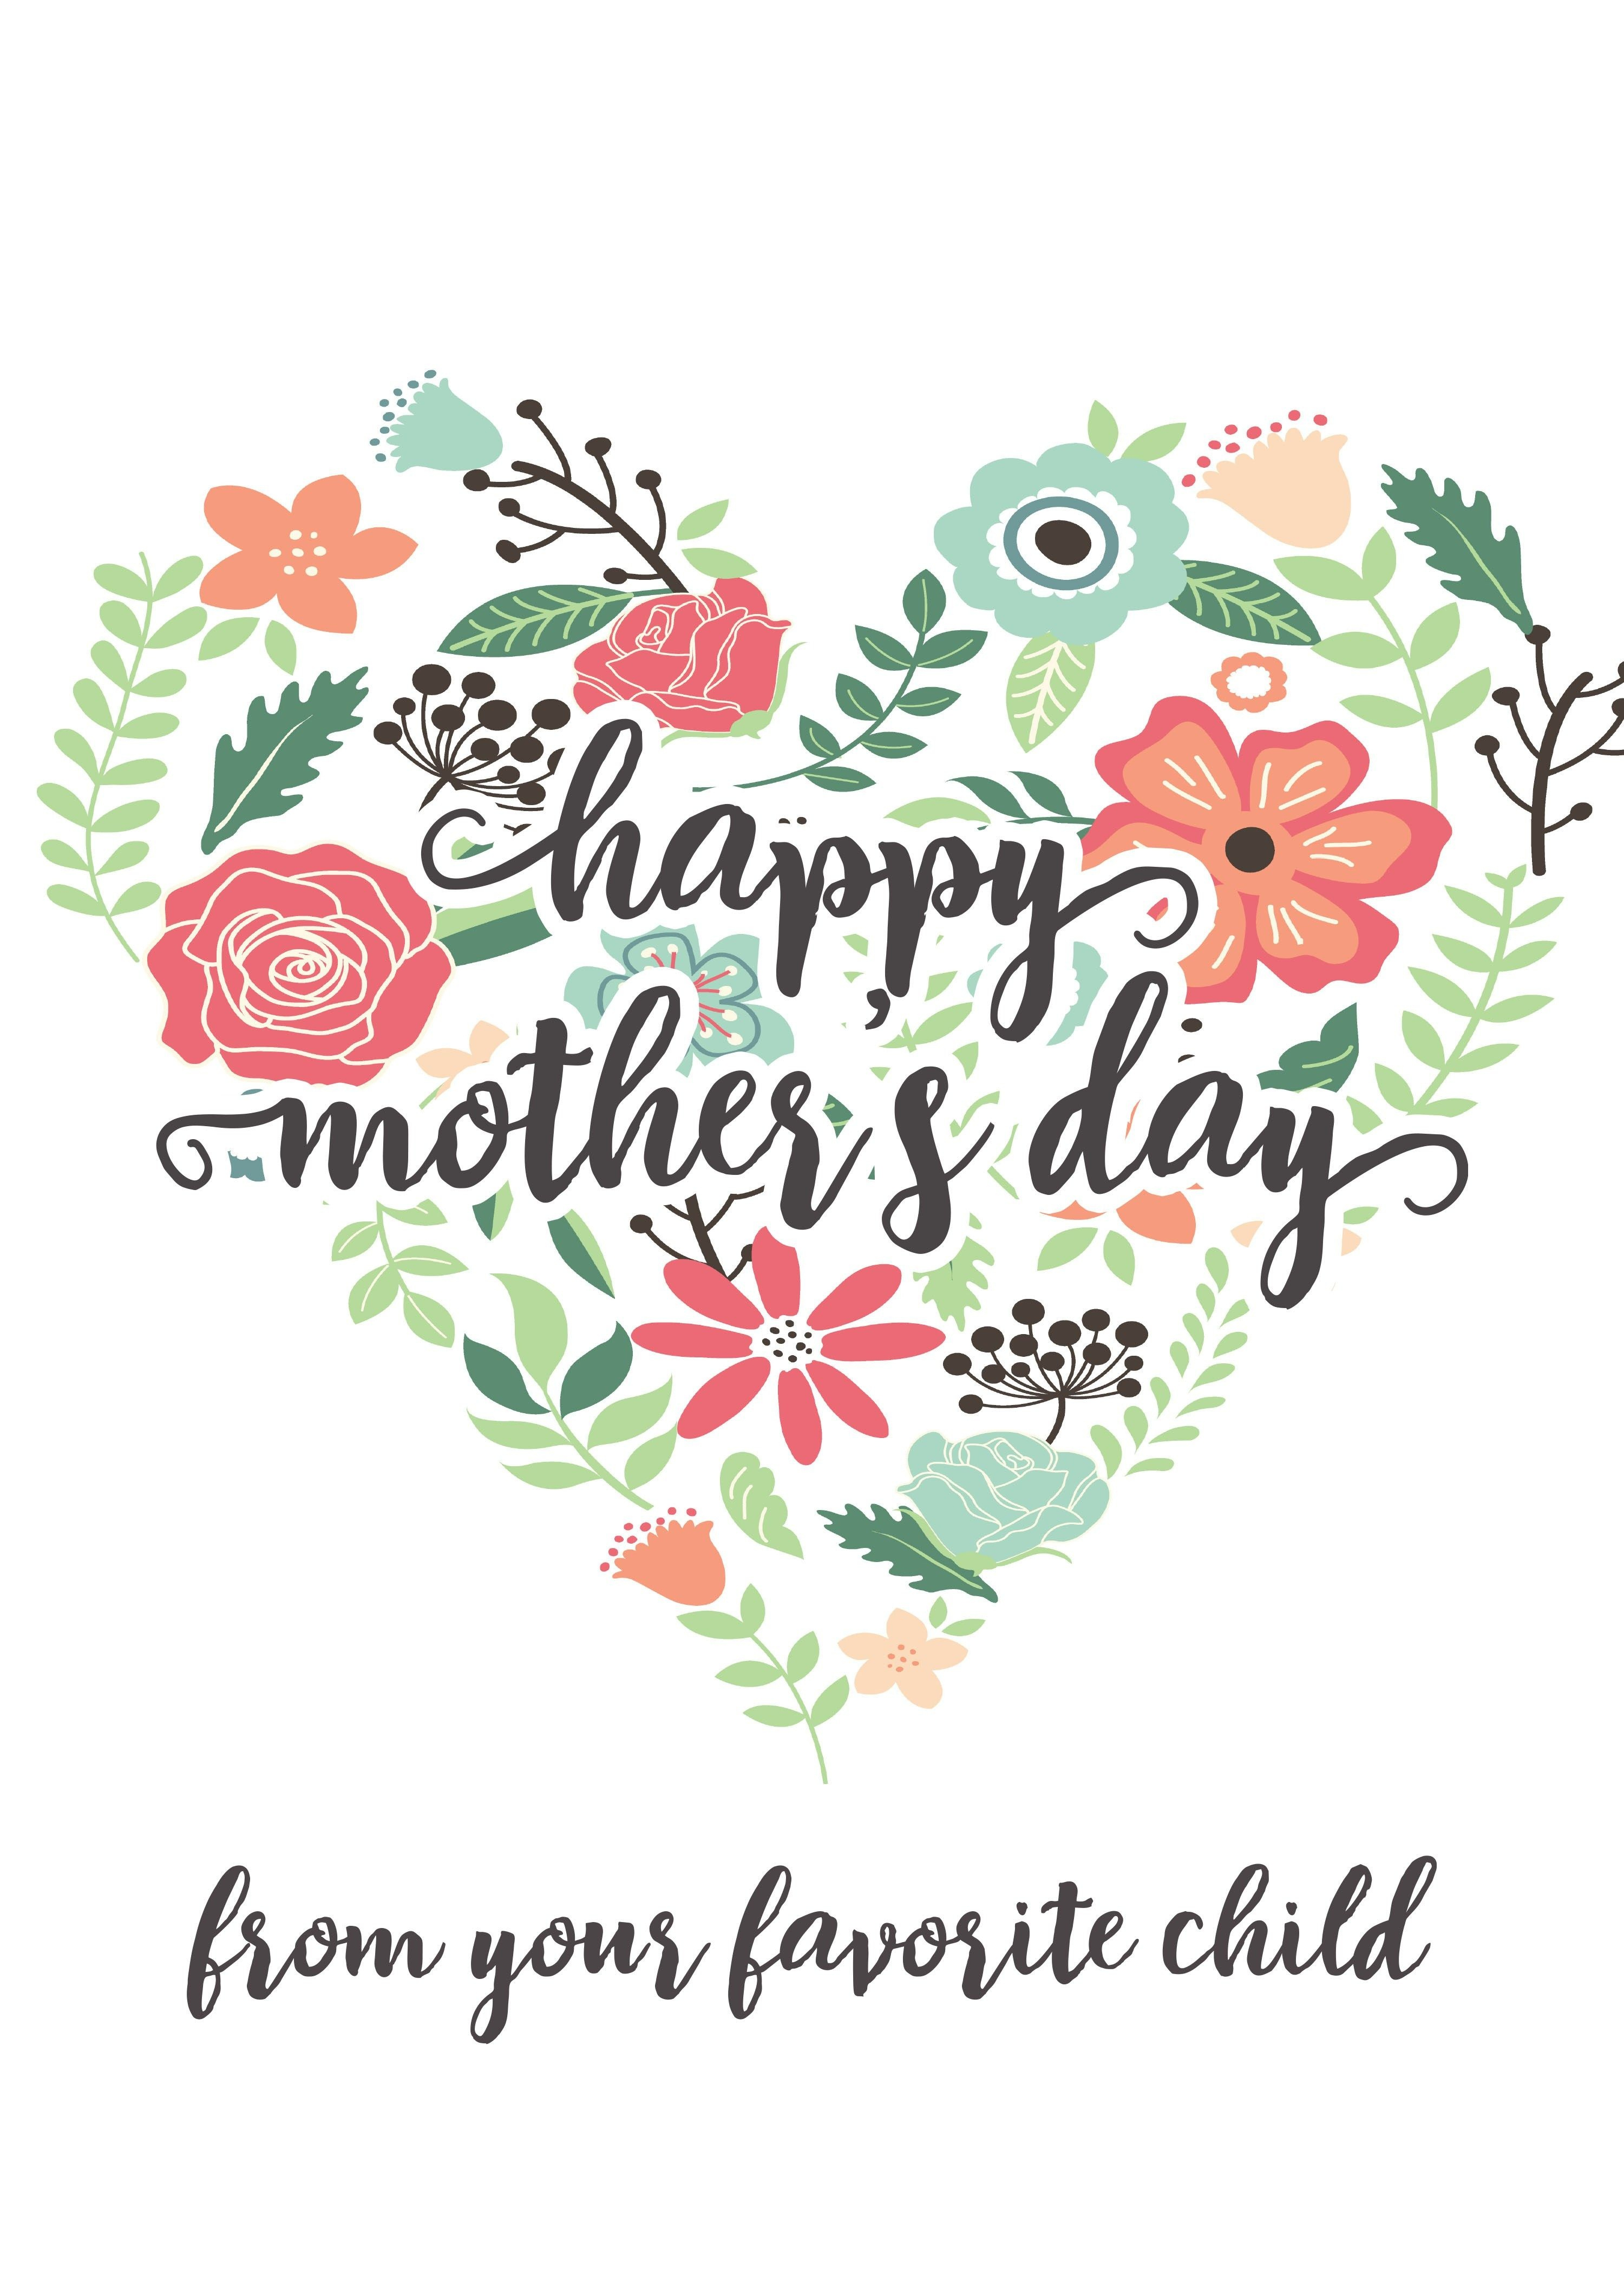 Happy Mothers Day Messages Free Printable Mothers Day Cards - Make Mother Day Card Online Free Printable